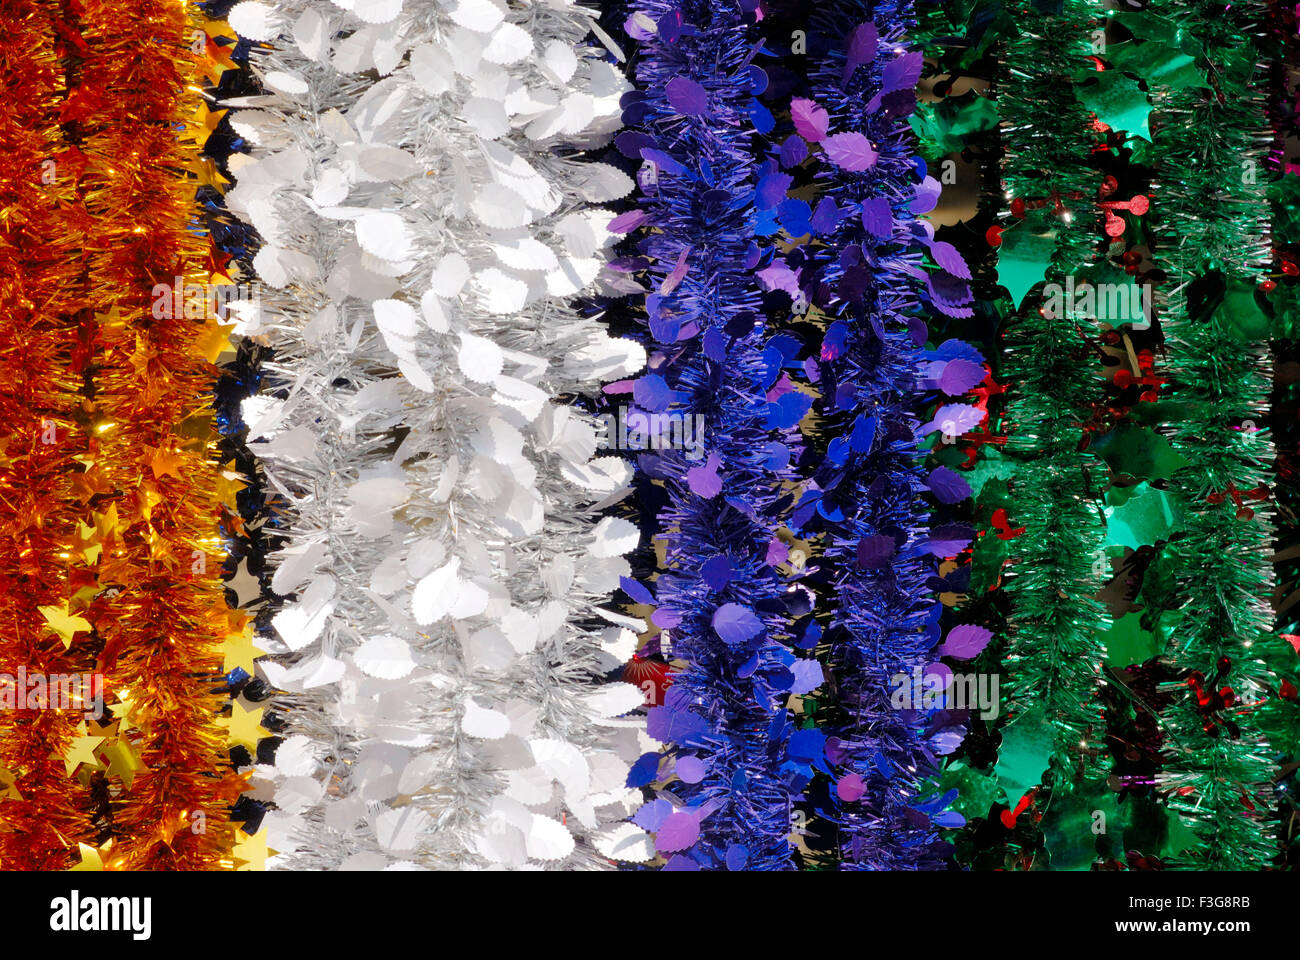 Long strings made colourful tinsel decorative material for celebrating Christmas Festival kept sell in shop Borivali - Stock Image